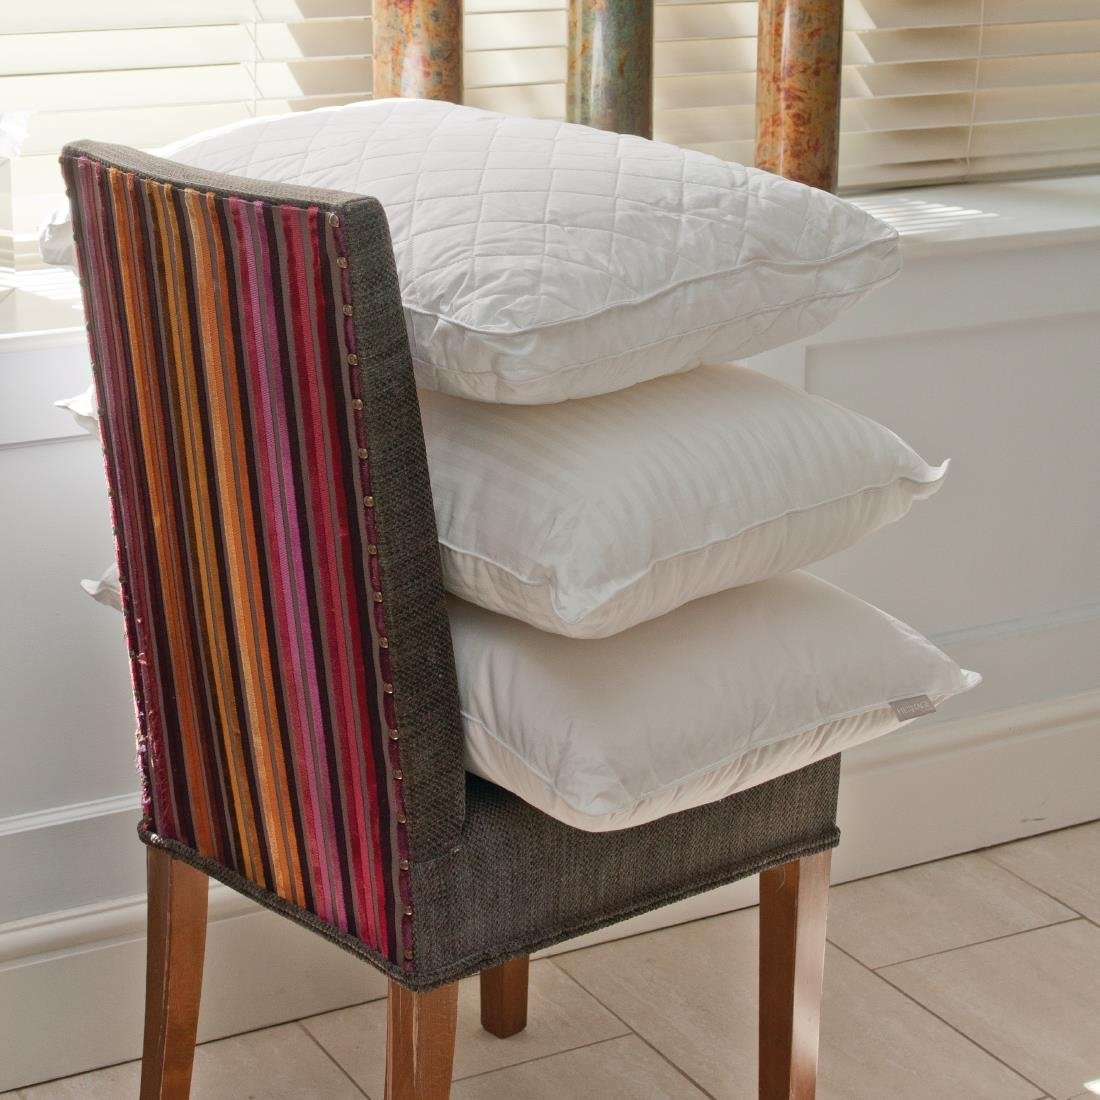 Mitre Heritage Abbey Pillow Firm